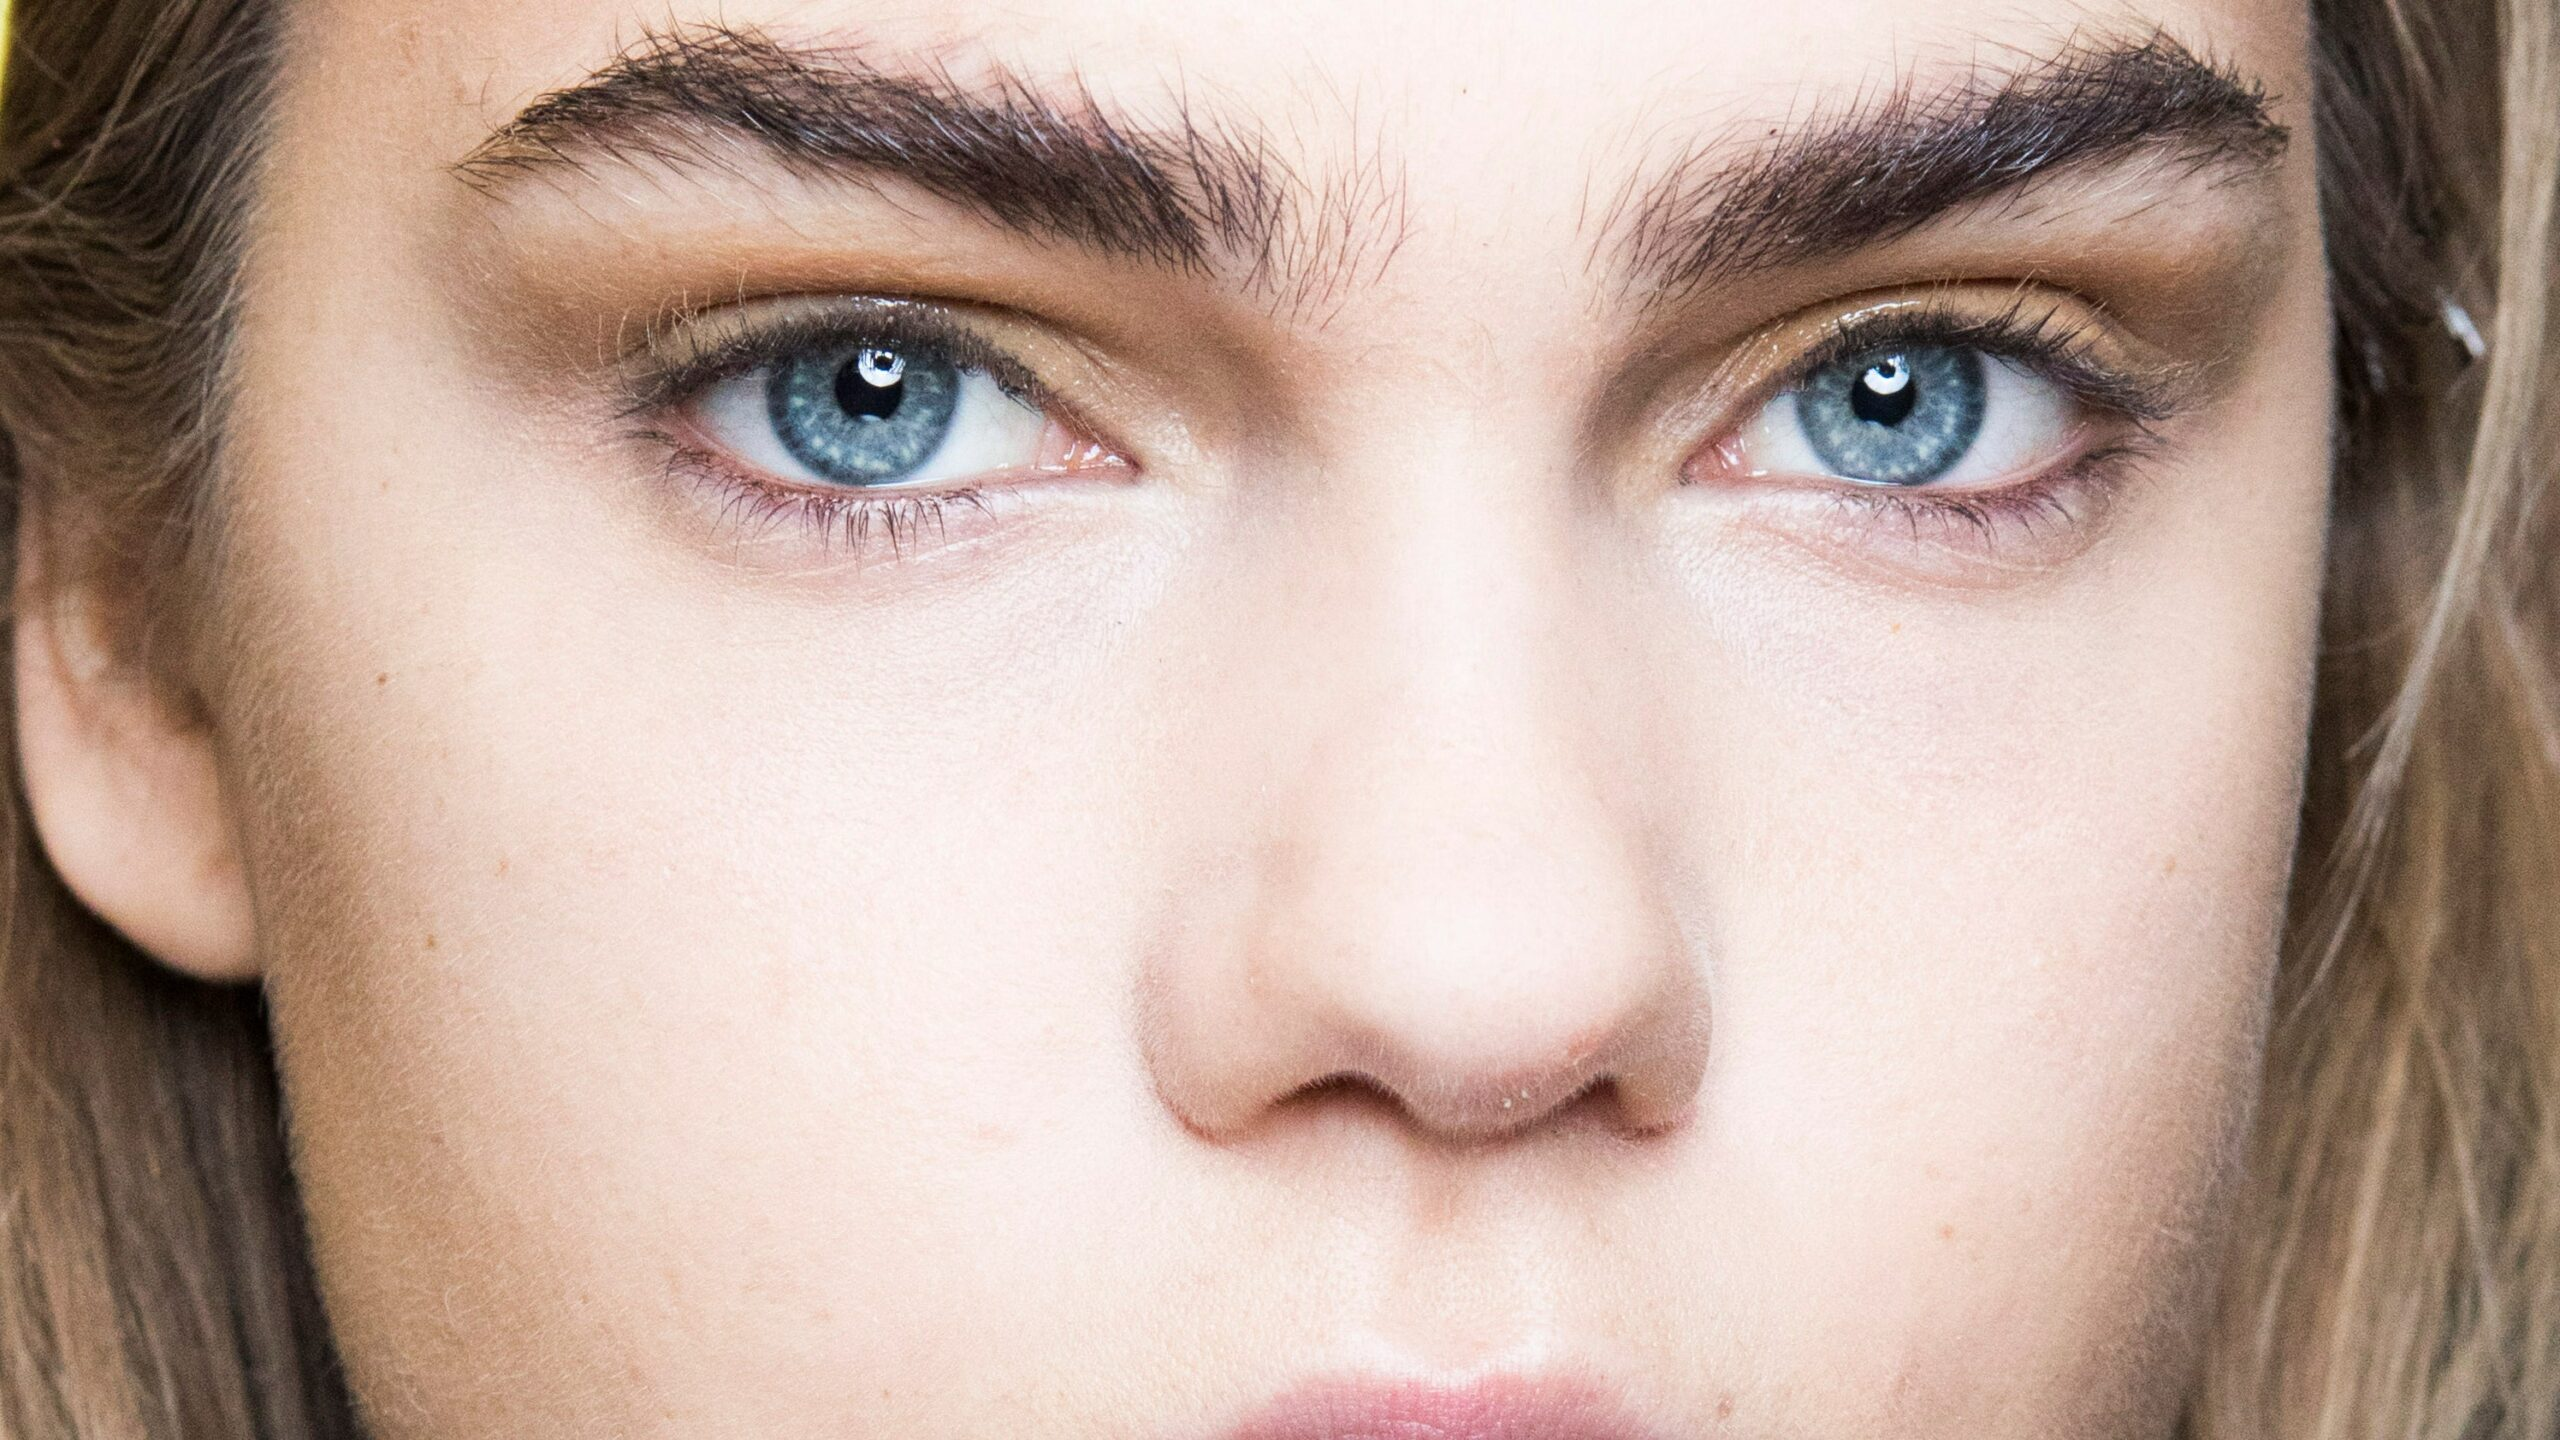 Can Eyebrows Grow Back After Plucking